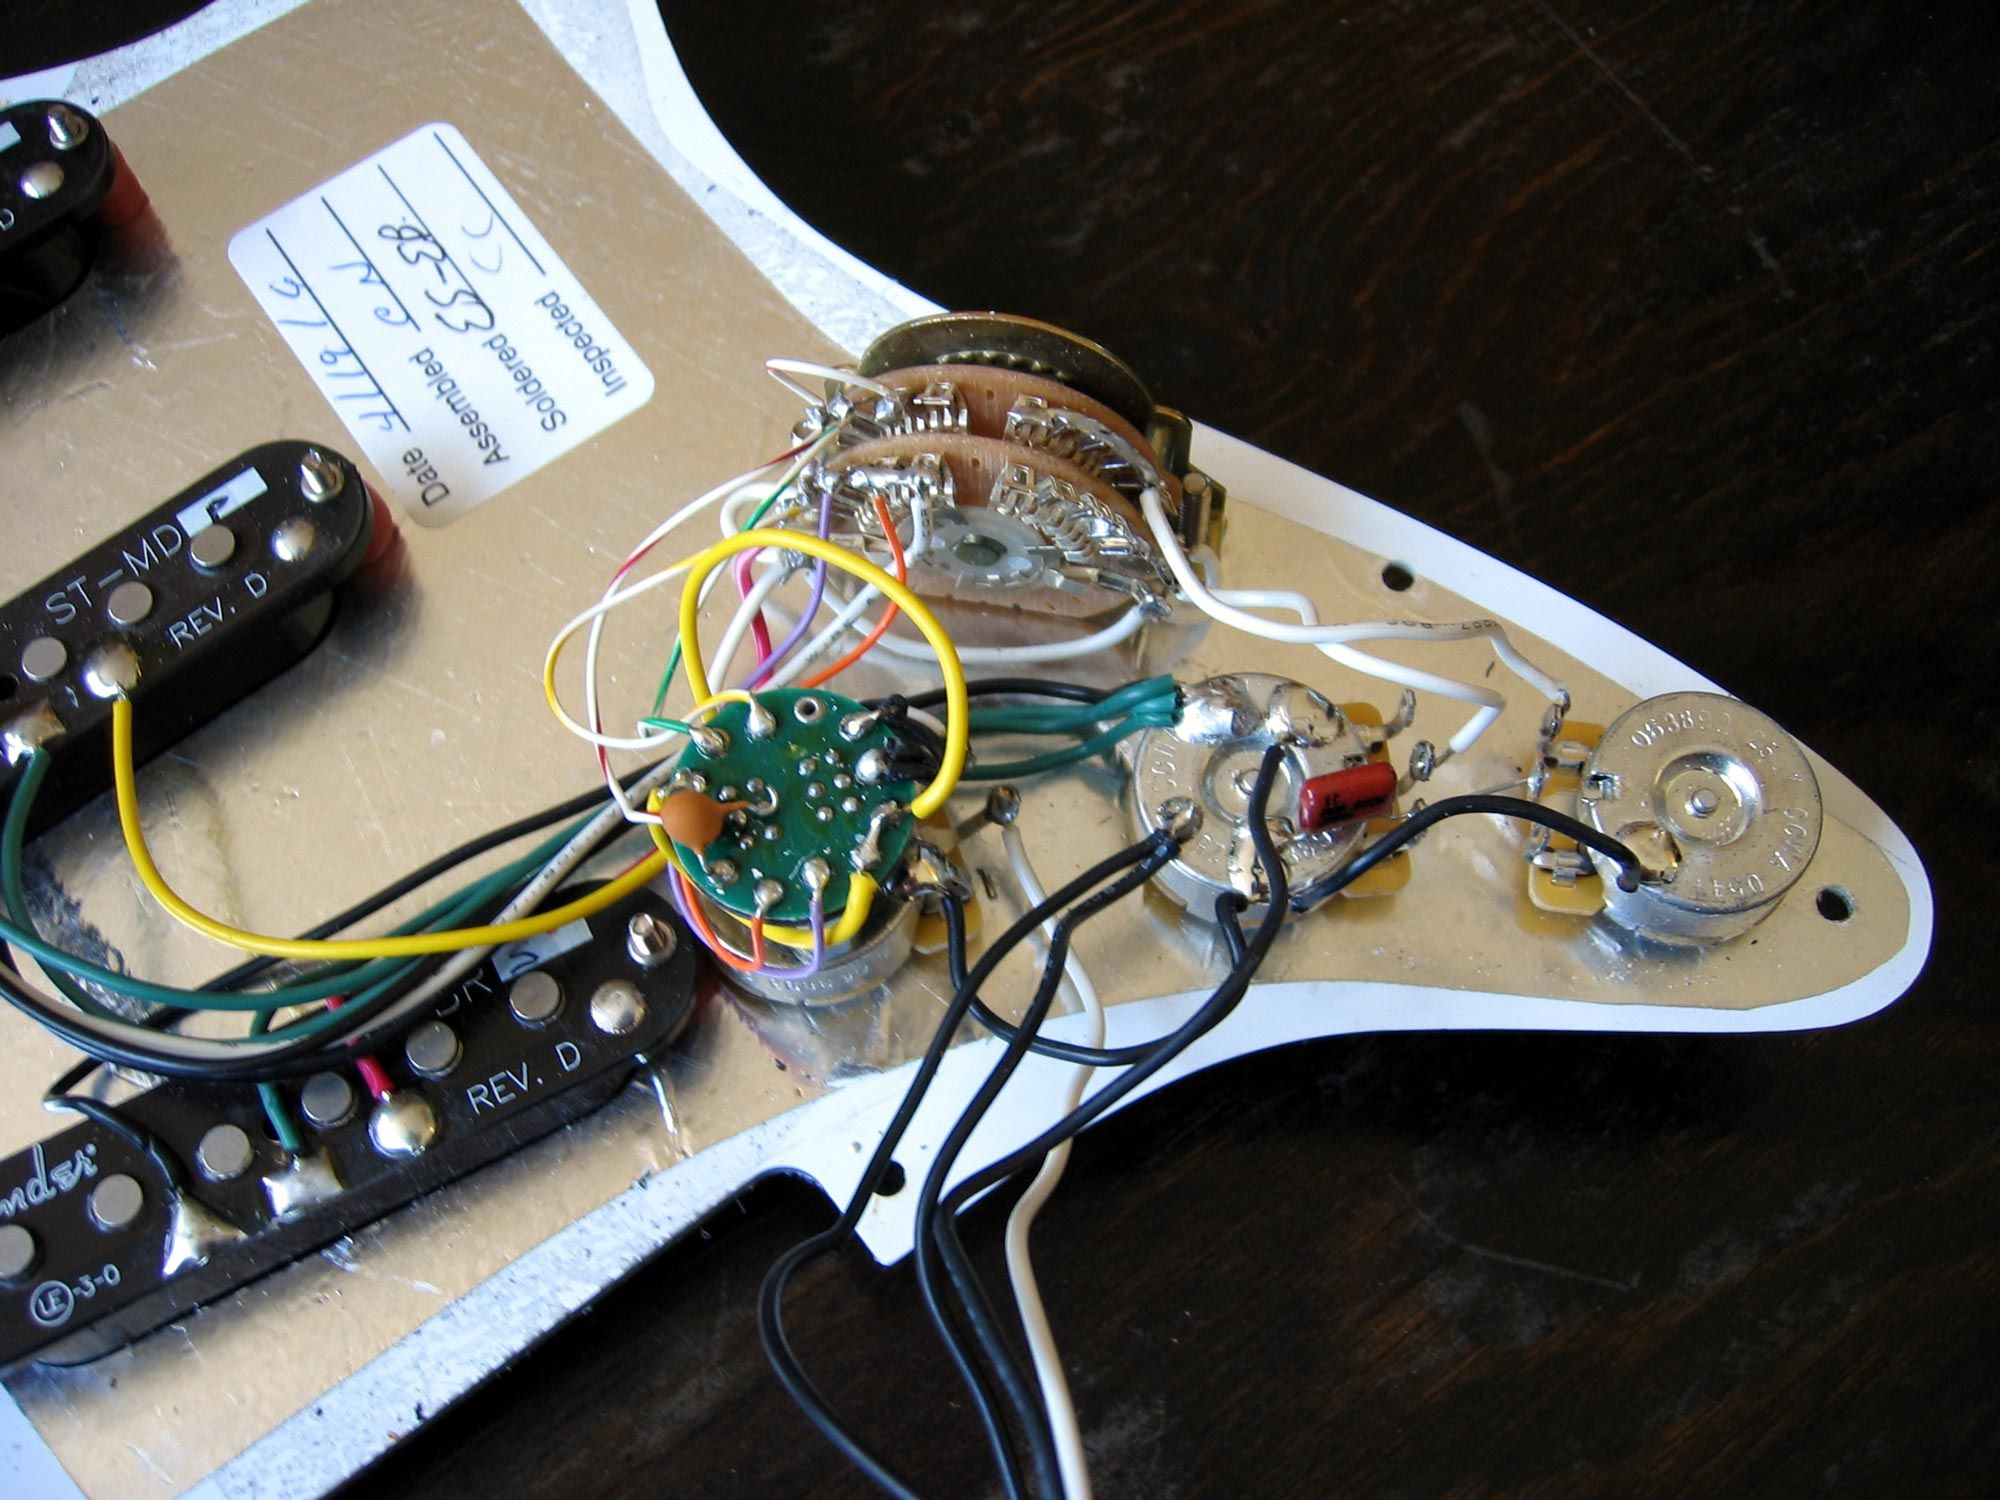 79ddfe4e3d621a882a9c179d6ff6fcac fender deluxe stratocaster w s 1 switch wiring diagram guitar  at gsmx.co